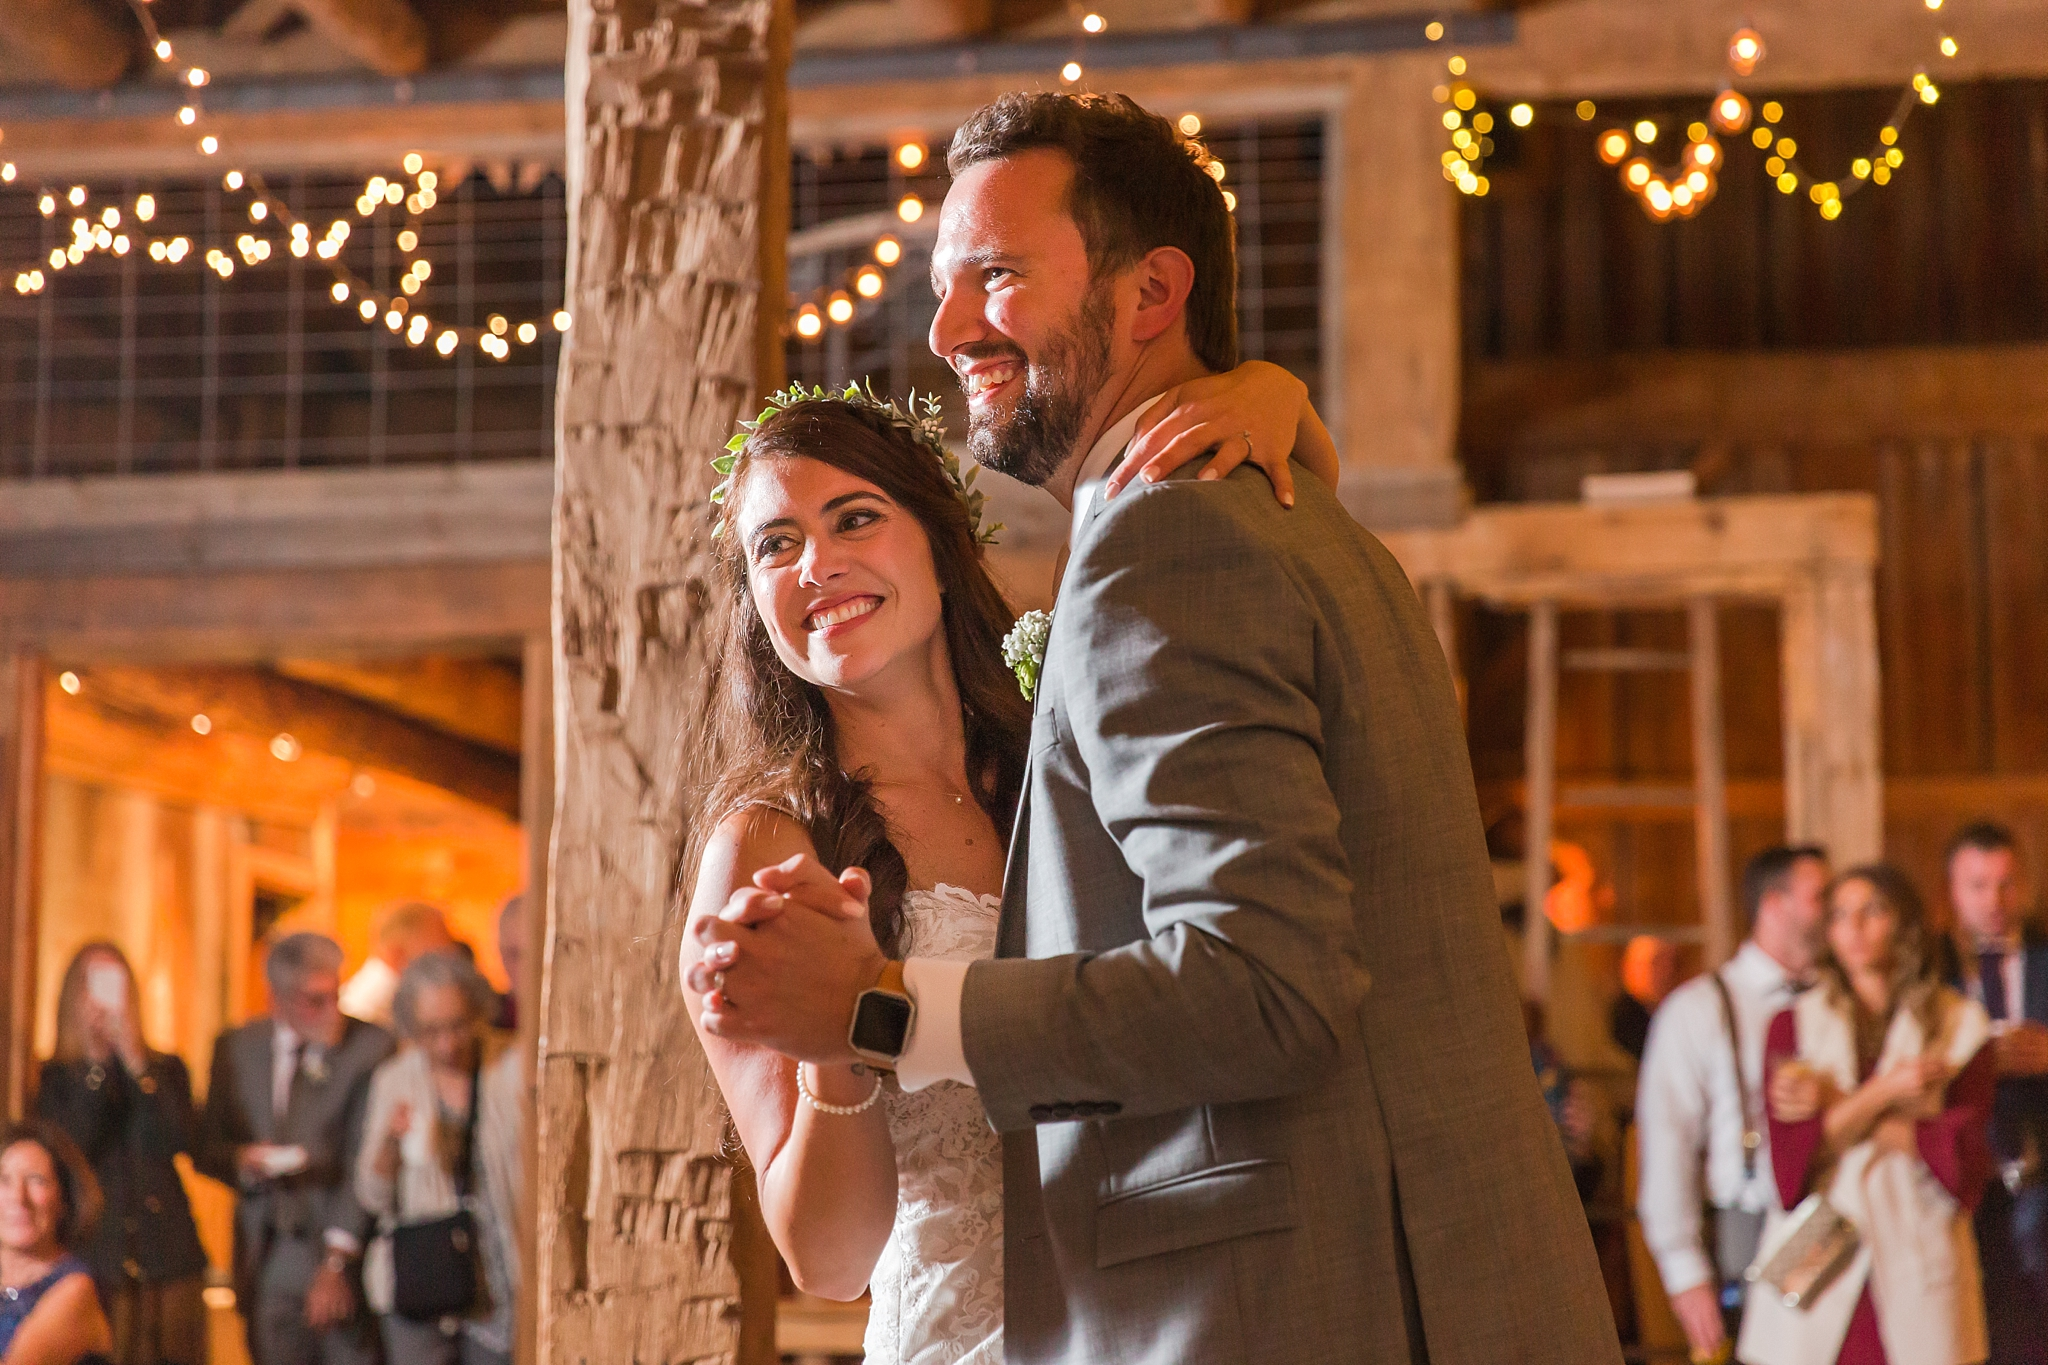 natural-rustic-wedding-photos-at-frutig-farms-the-valley-in-ann-arbor-michigan-by-courtney-carolyn-photography_0090.jpg